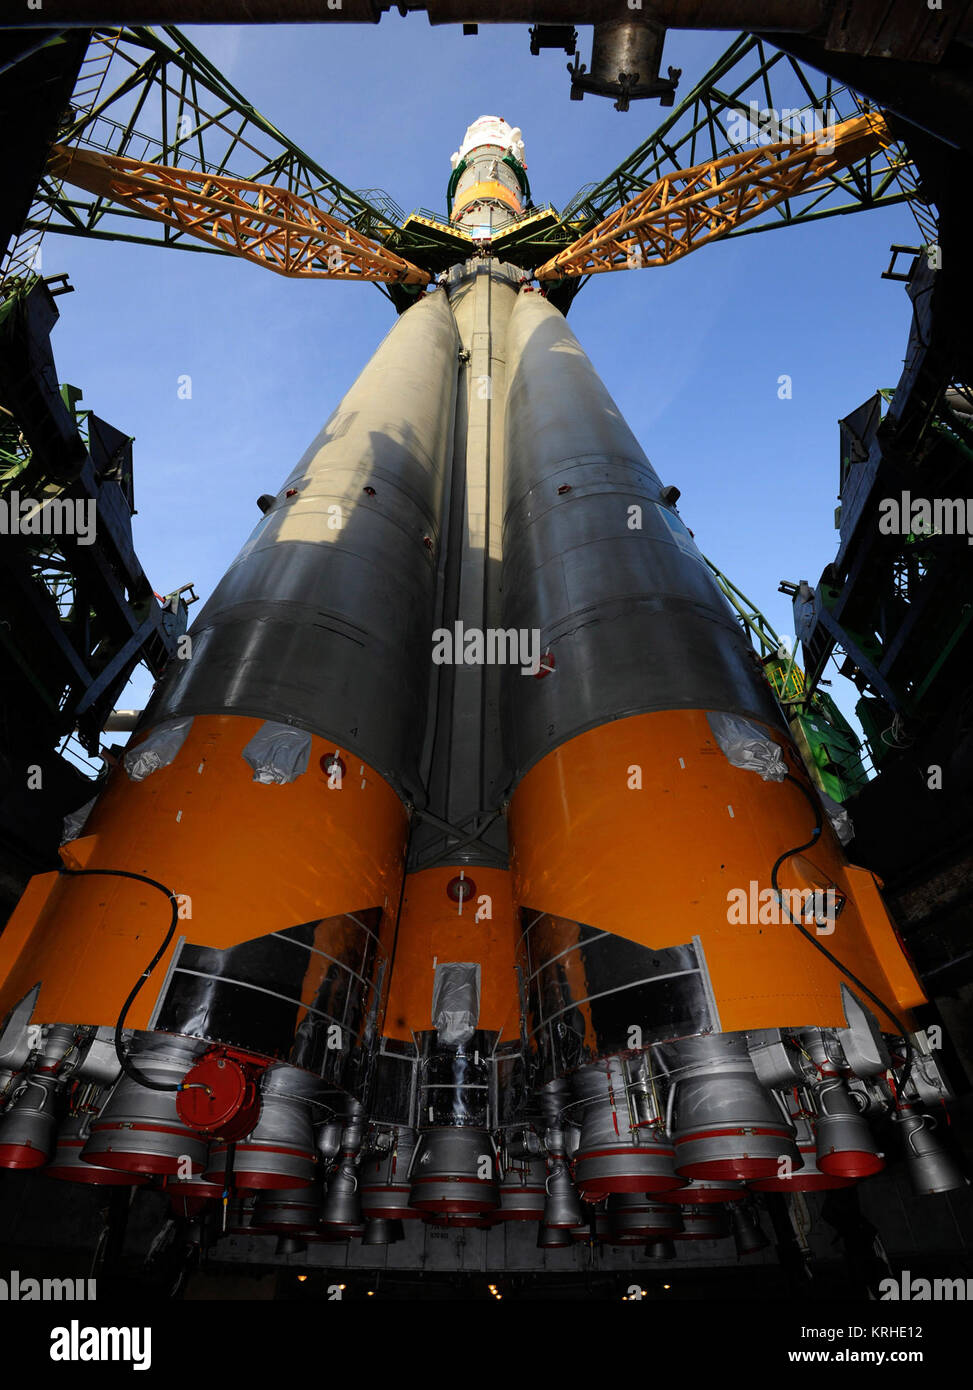 The Soyuz TMA-13 spacecraft arrives at the launch pad at the Baikonur Cosmodrome in Kazakhstan, Friday, Oct. 10, - Stock Image